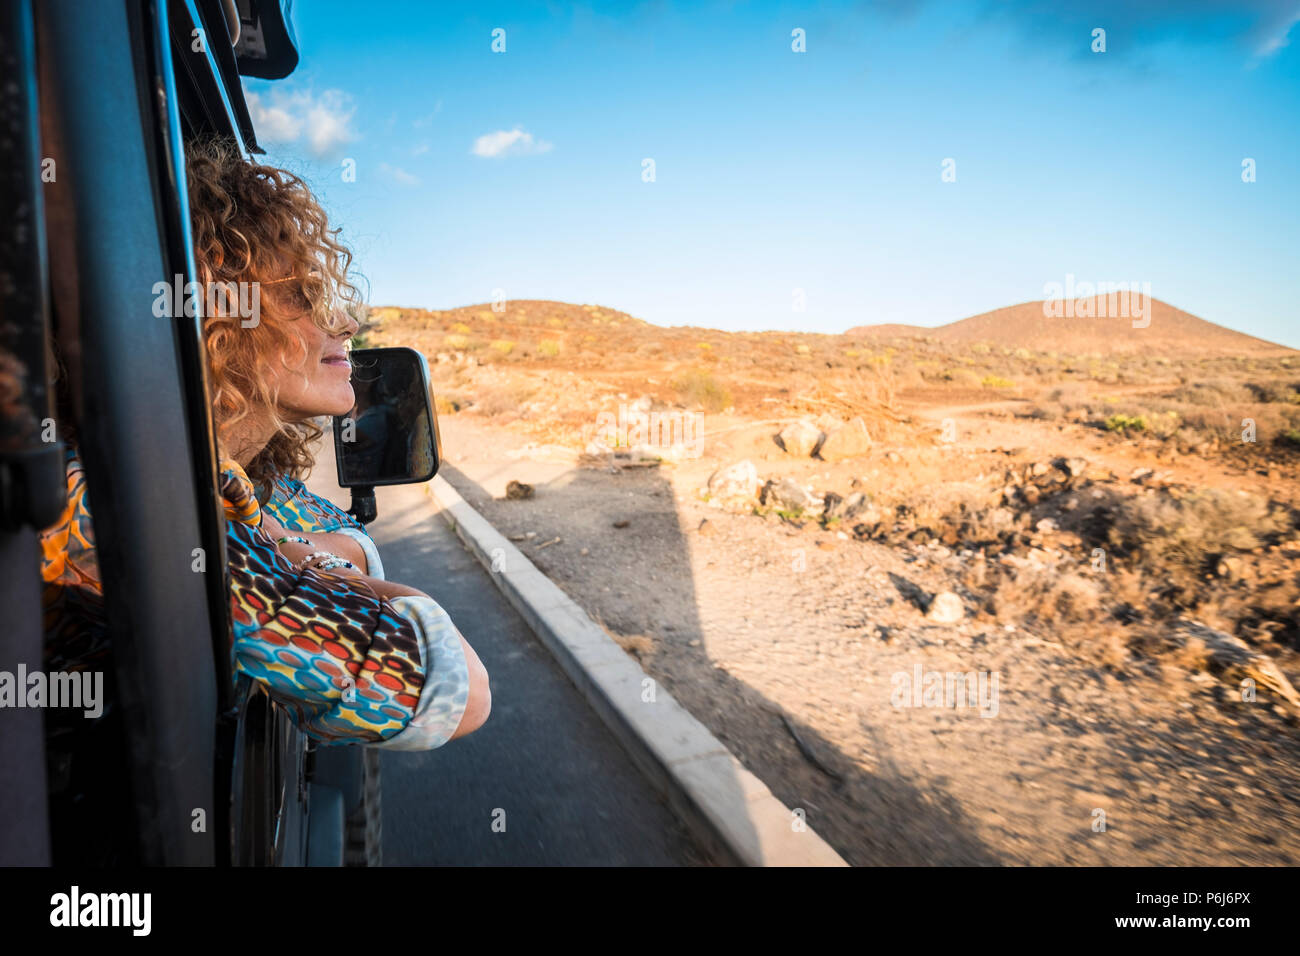 beautiful caucasian young woman traveling with an off road black car and looking outside the landscape. desert and mountains travel scenic place for n - Stock Image